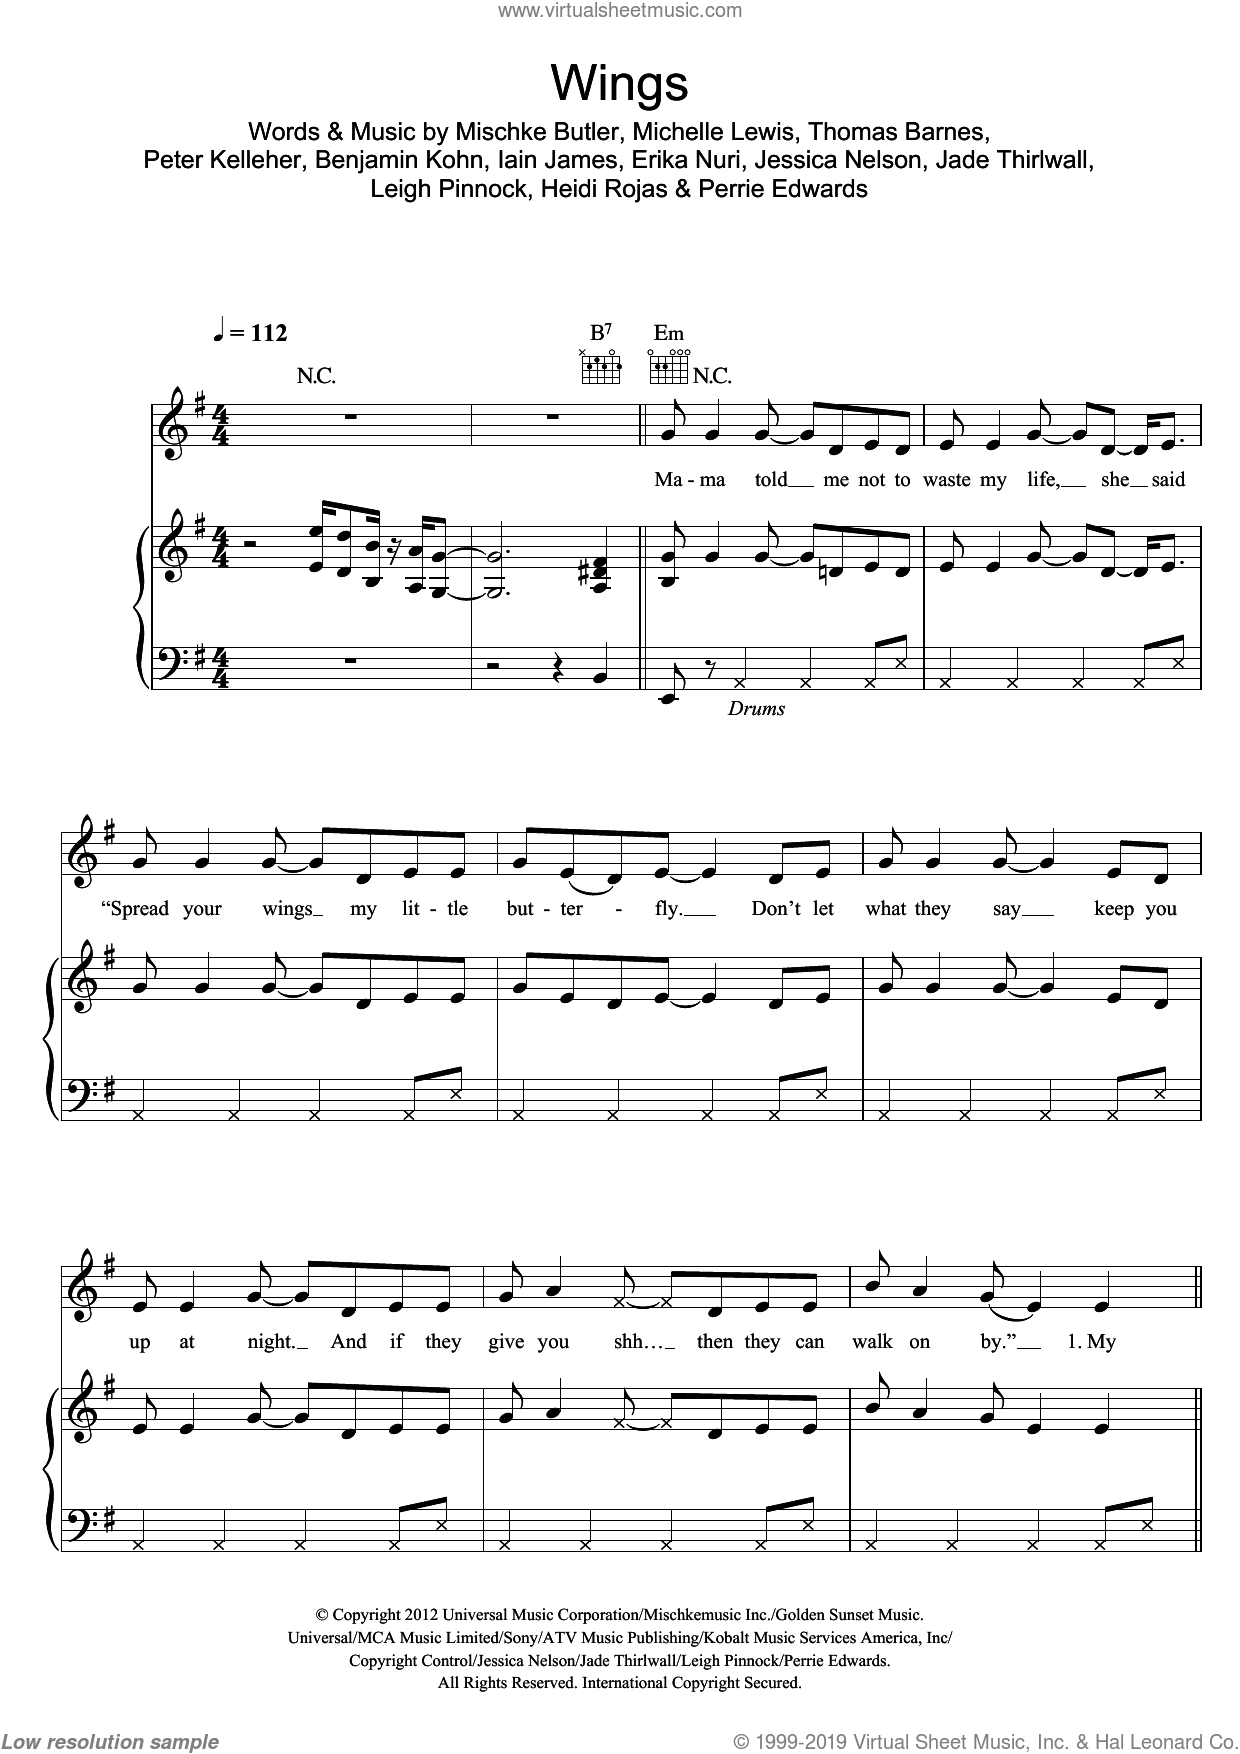 Wings sheet music for voice, piano or guitar by Thomas Barnes